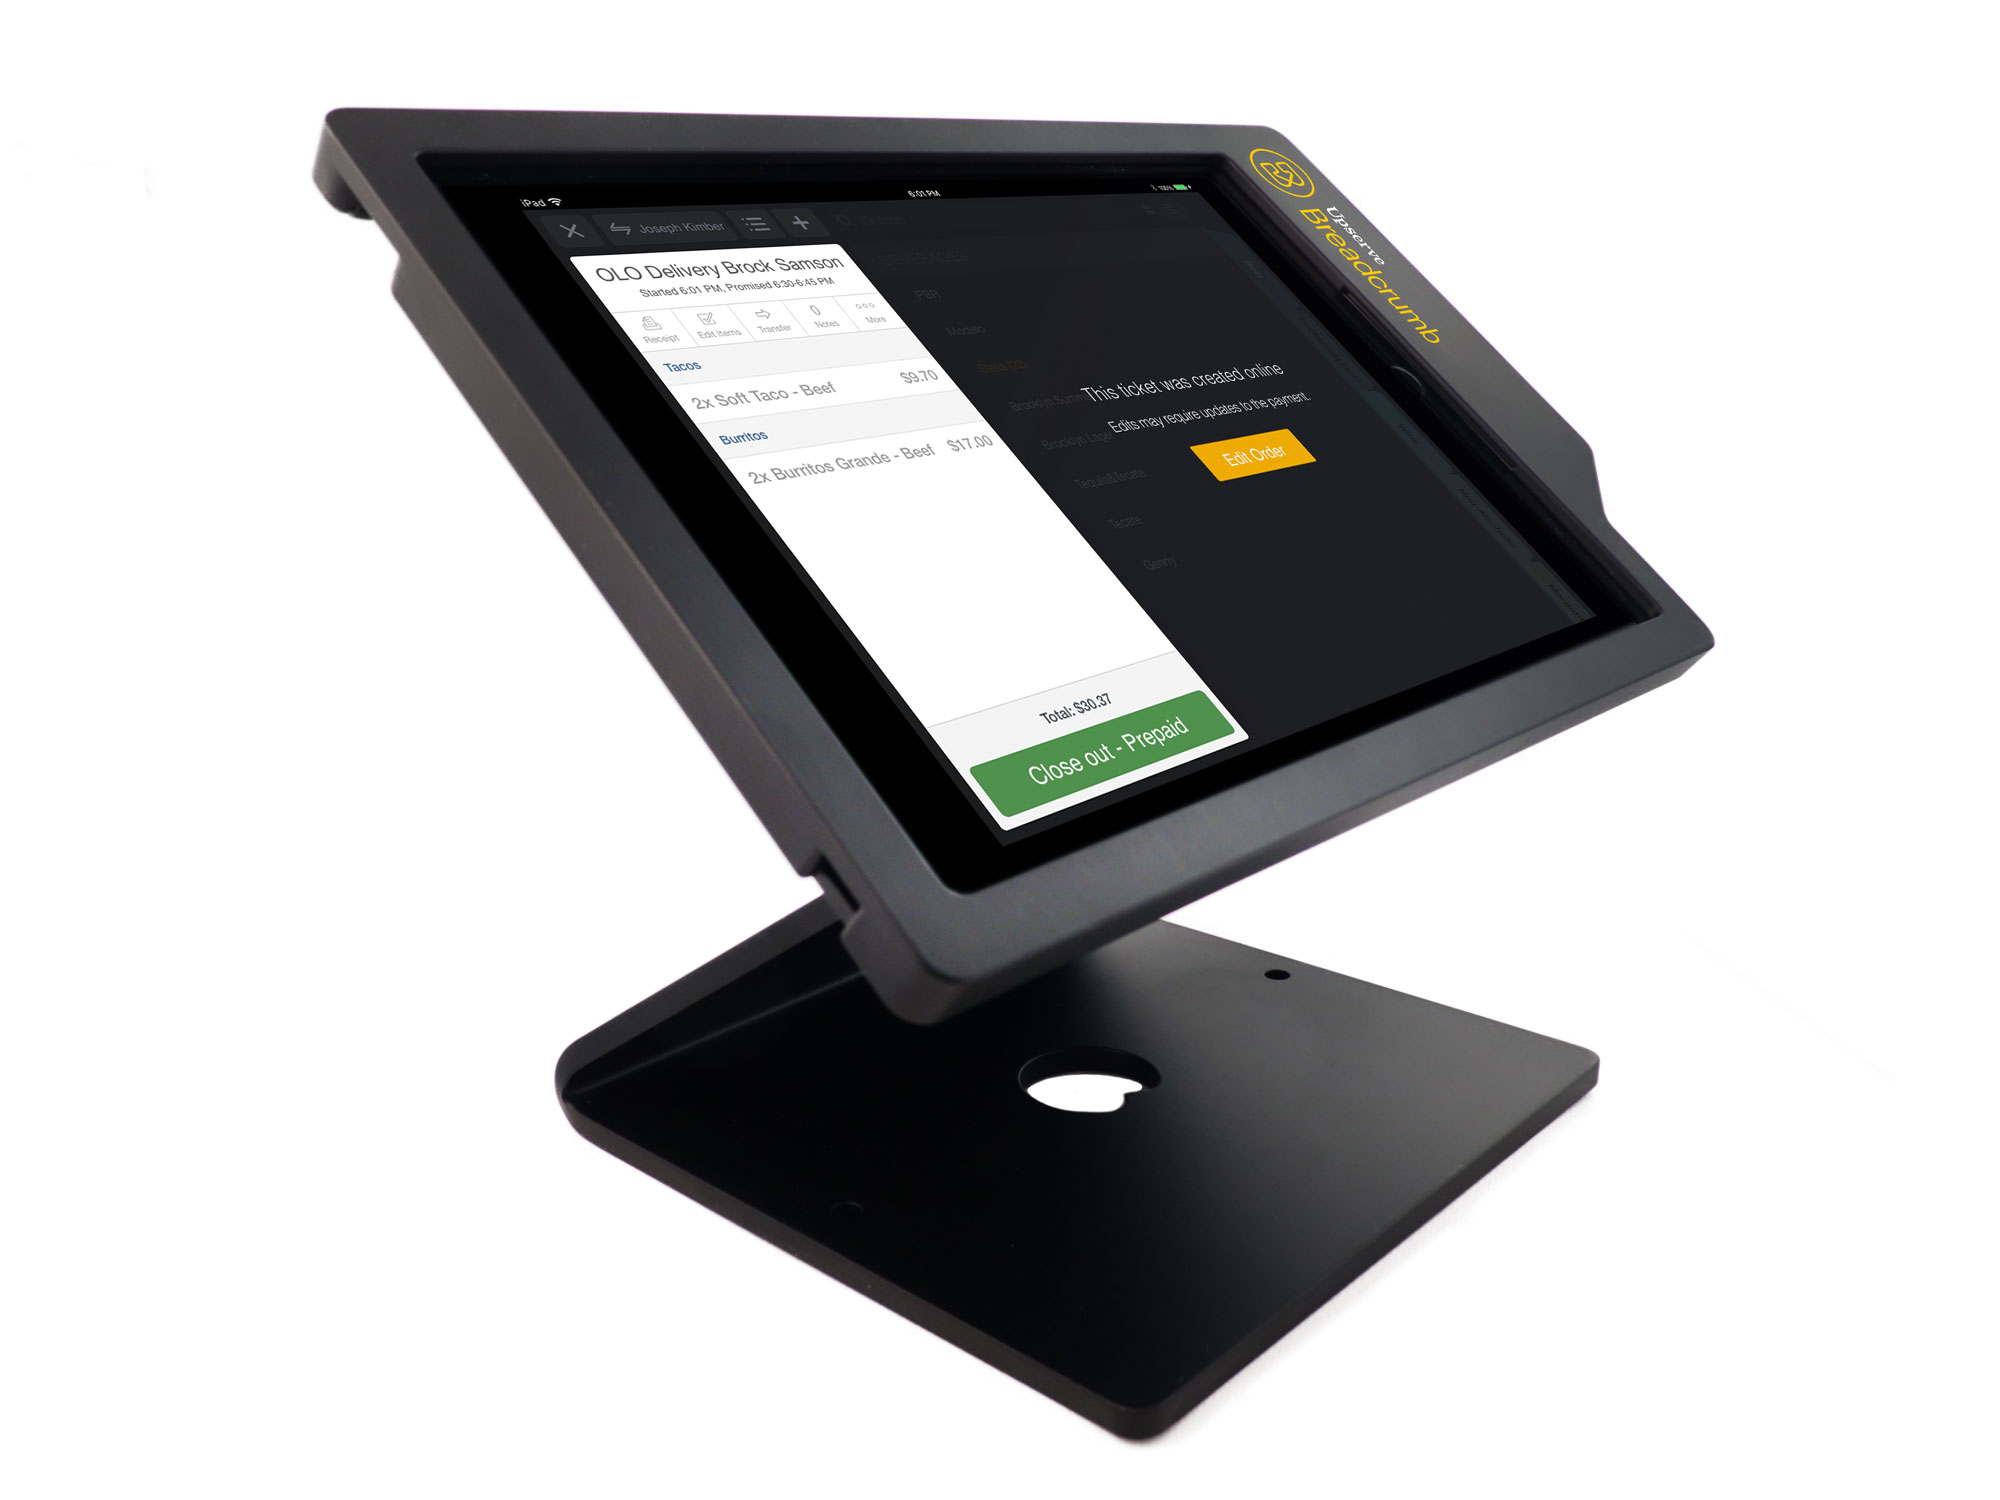 Receive online orders directly through your POS system, making deliveries a breeze